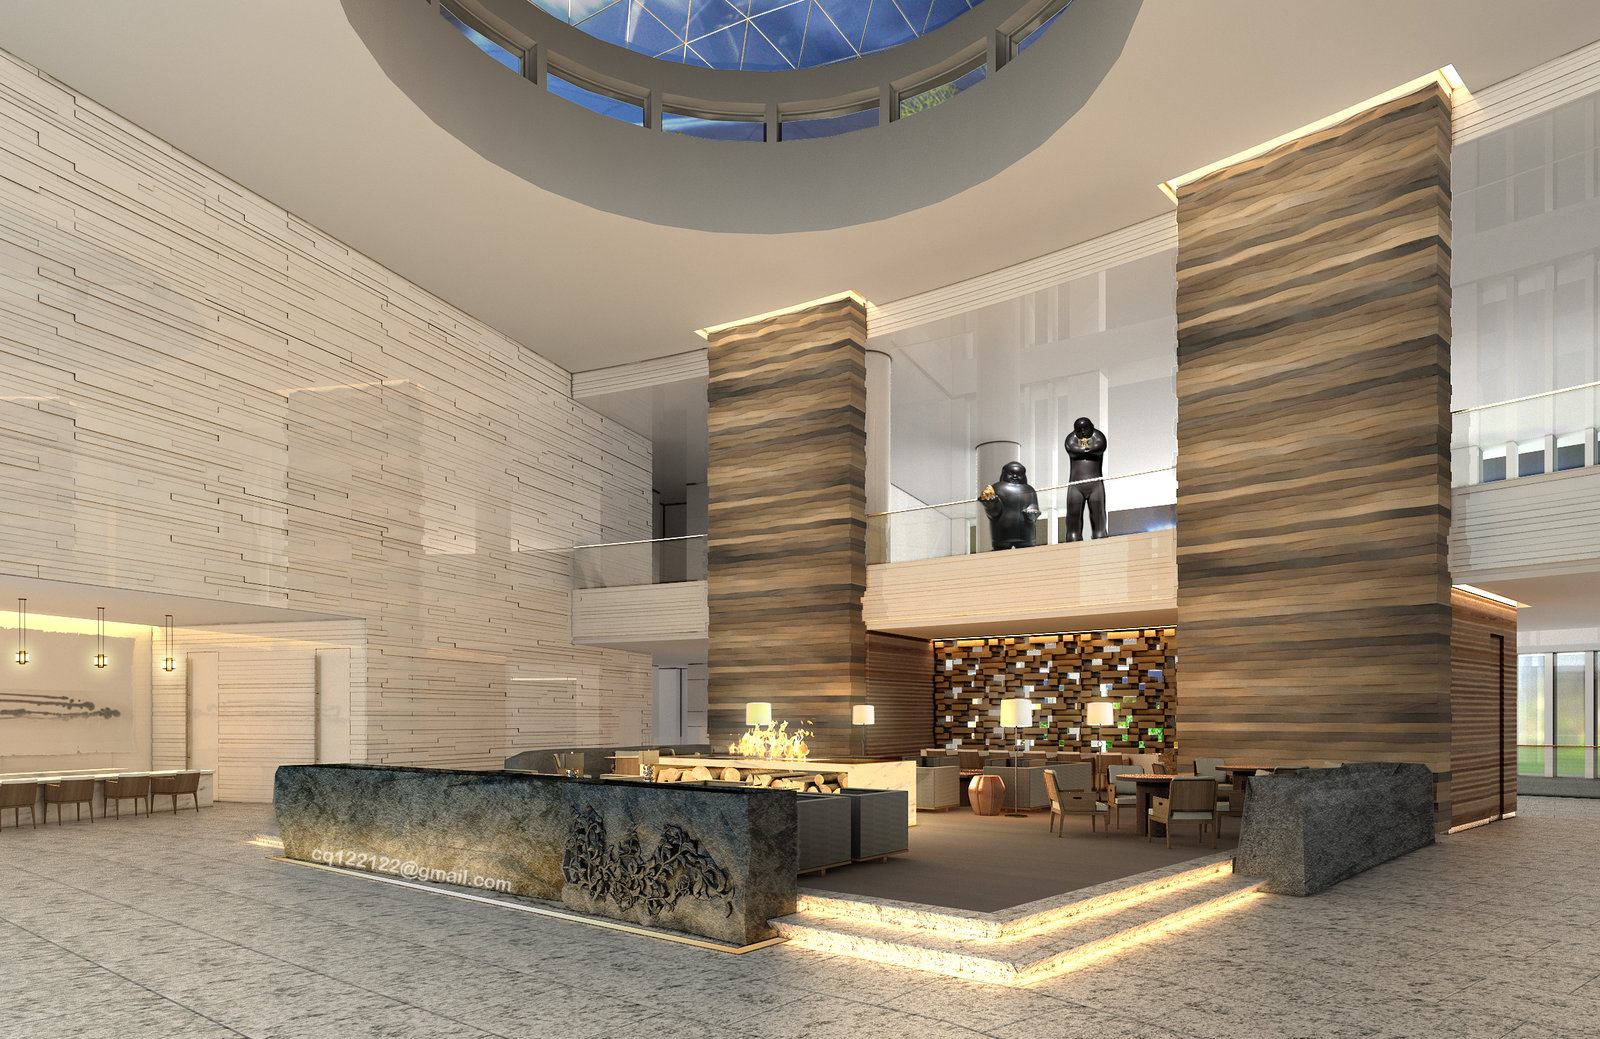 6 ways hotel lobbies teach us about interior design for Modern hotel design